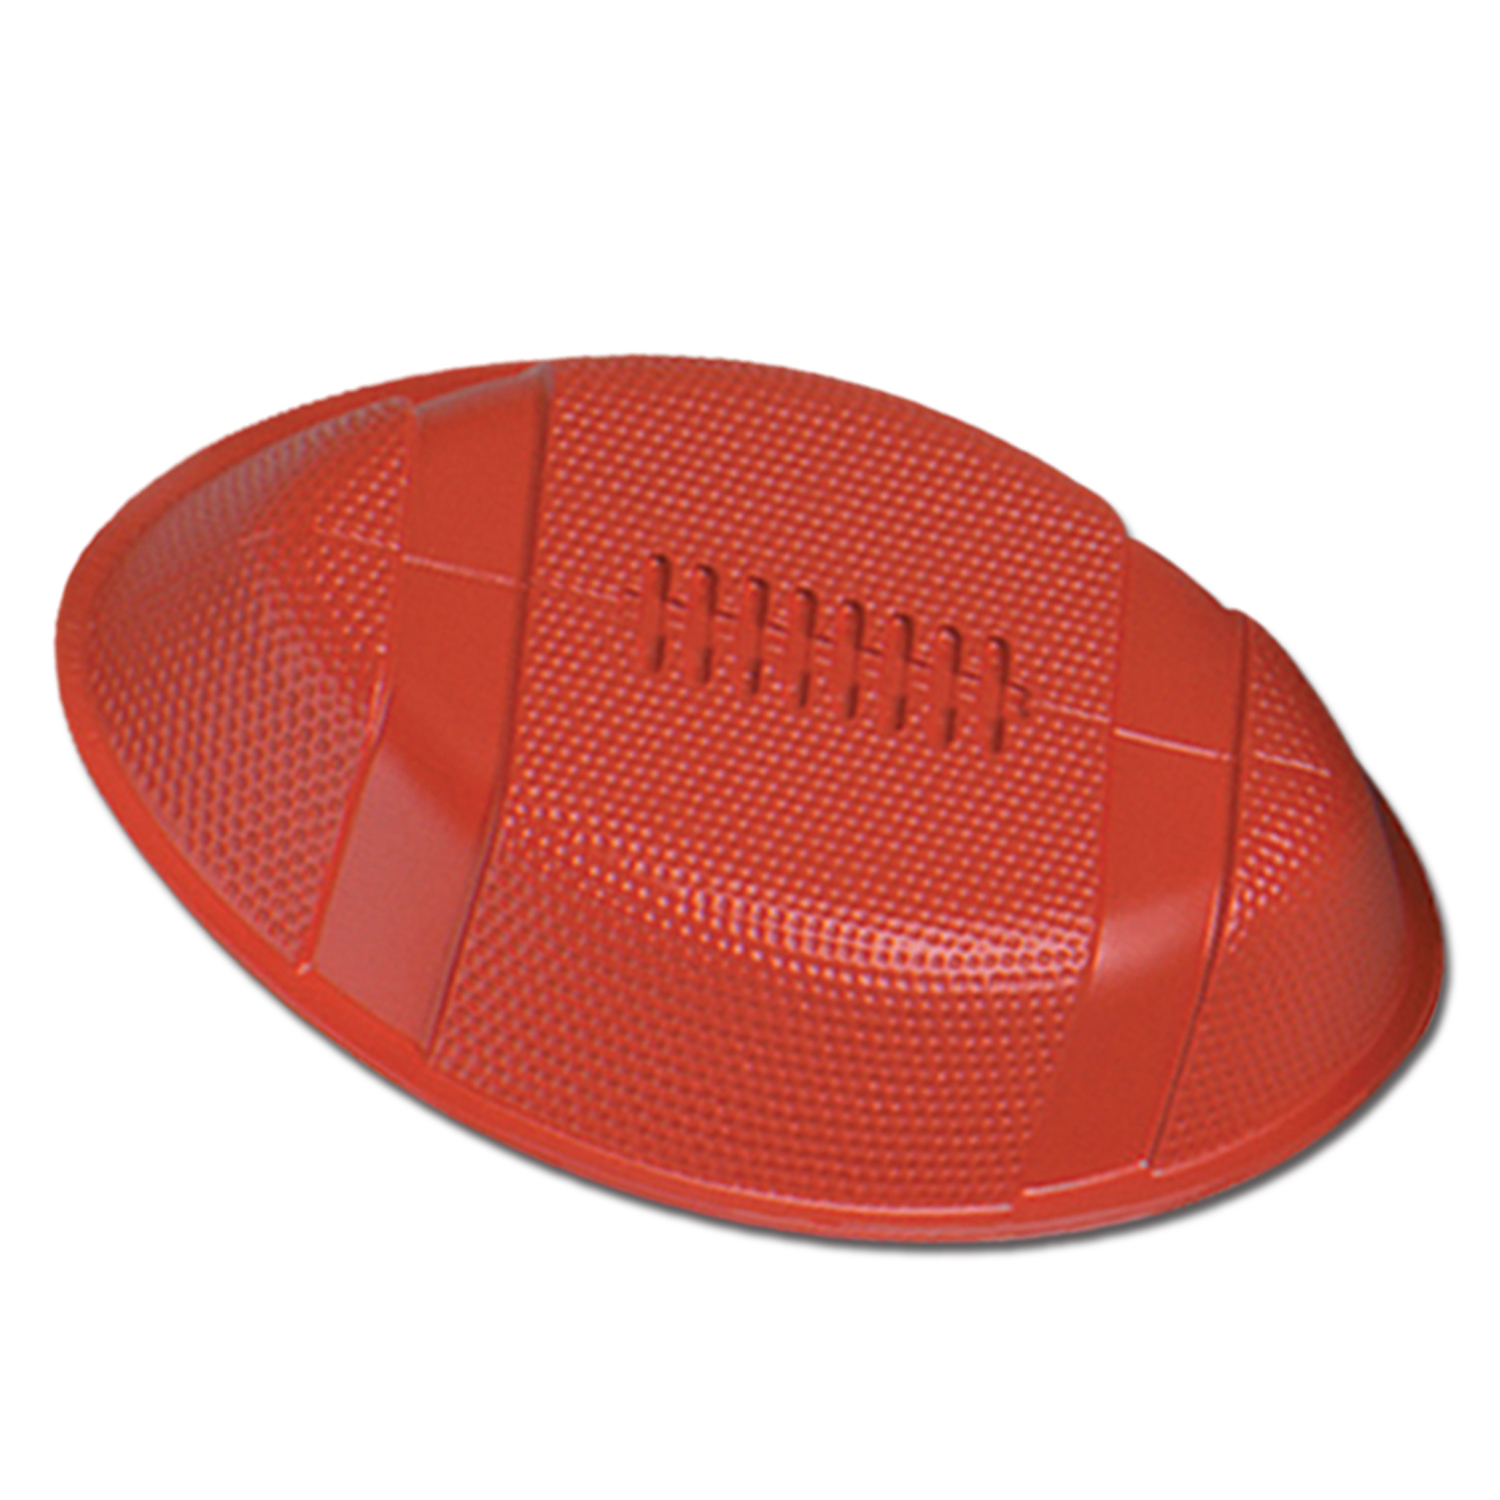 "Plastic Football Food Serving Tray 12"" - Super Bowl Party Supplies"